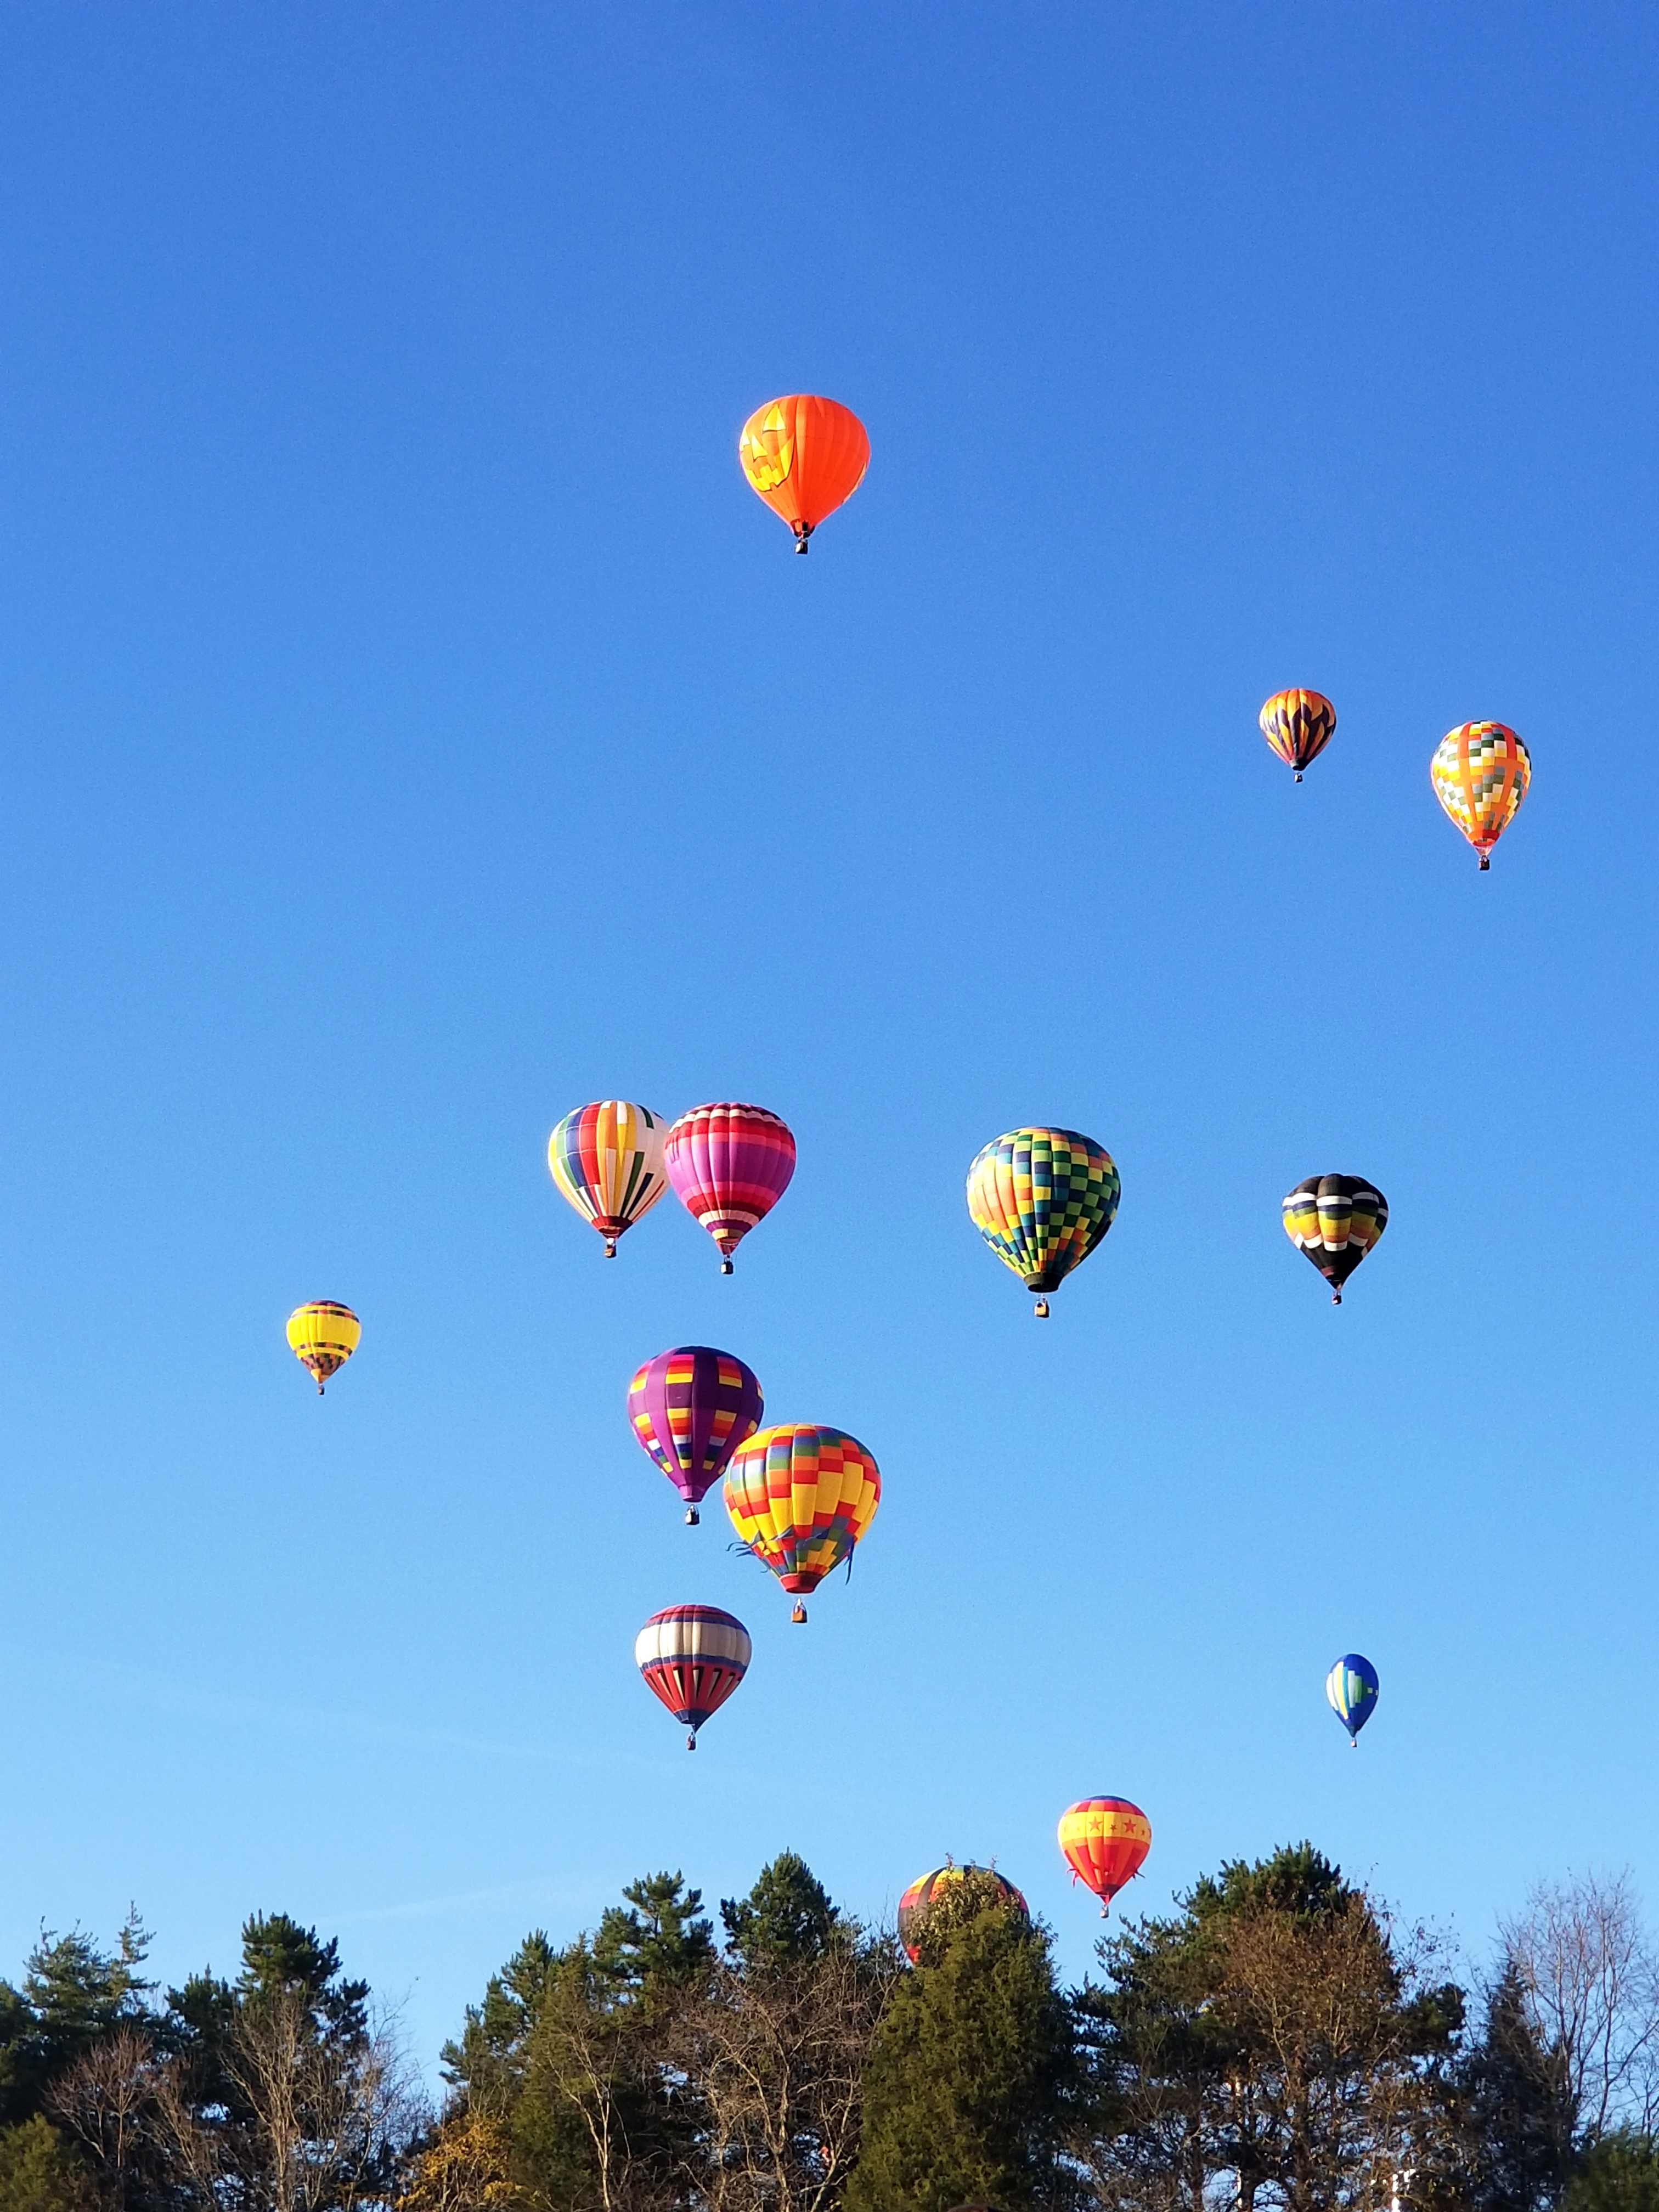 20171020_Chinook BalloonFest NC Day1.jpg